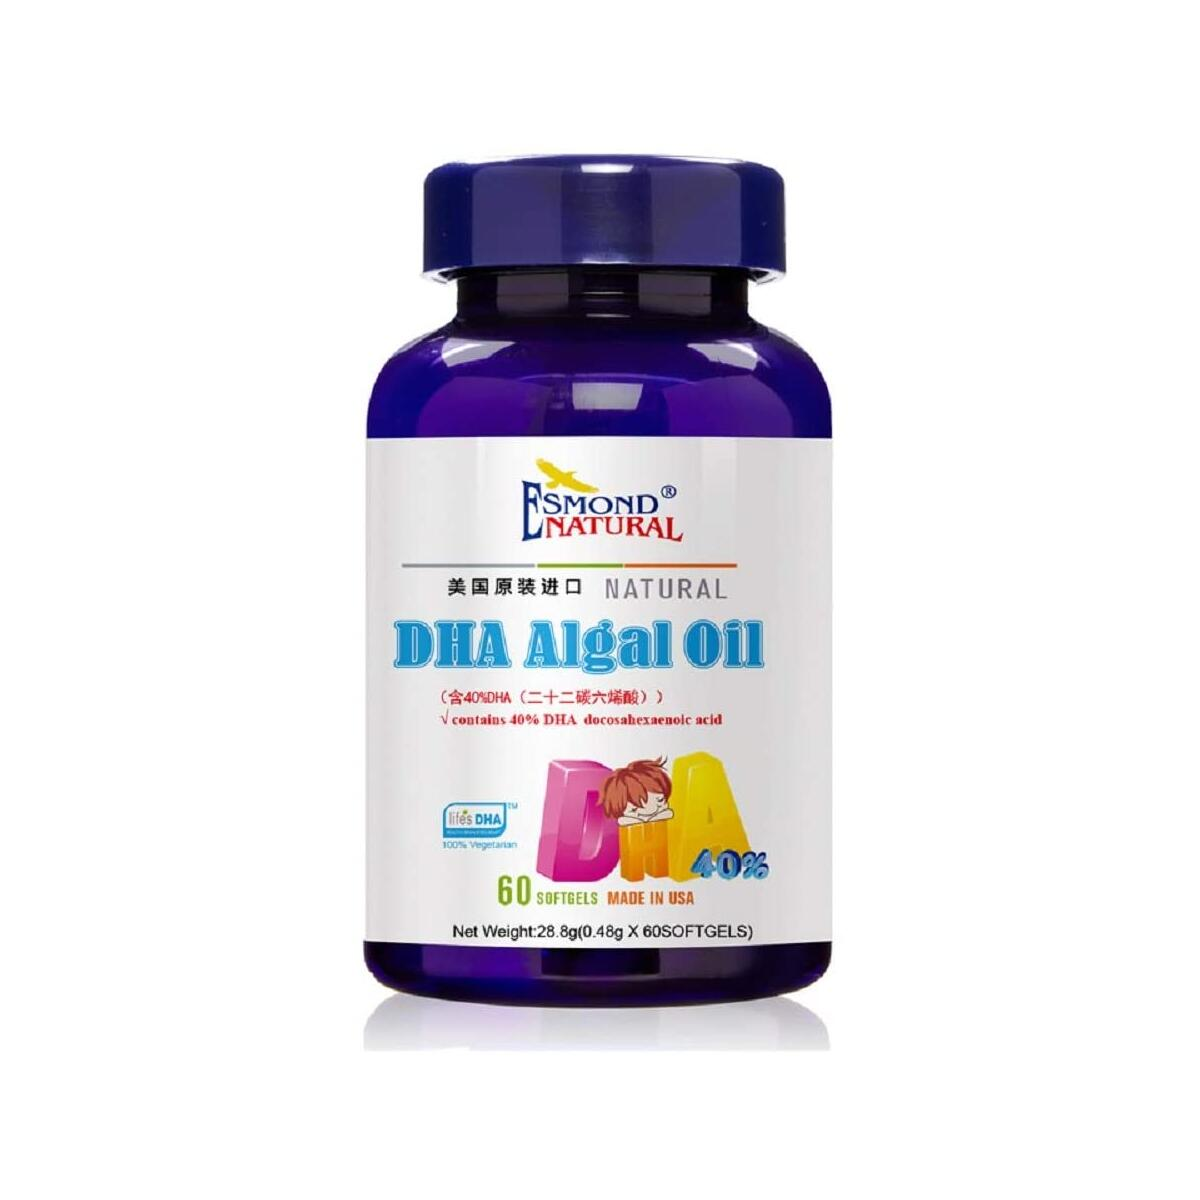 (3 Count, 10% Off) Esmond Natural: DHA Algal Oil (40% DHA Docosahexaenoic Acid), GMP, Natural Product Assn Certified, Made in USA-480mg, 180 Softgels